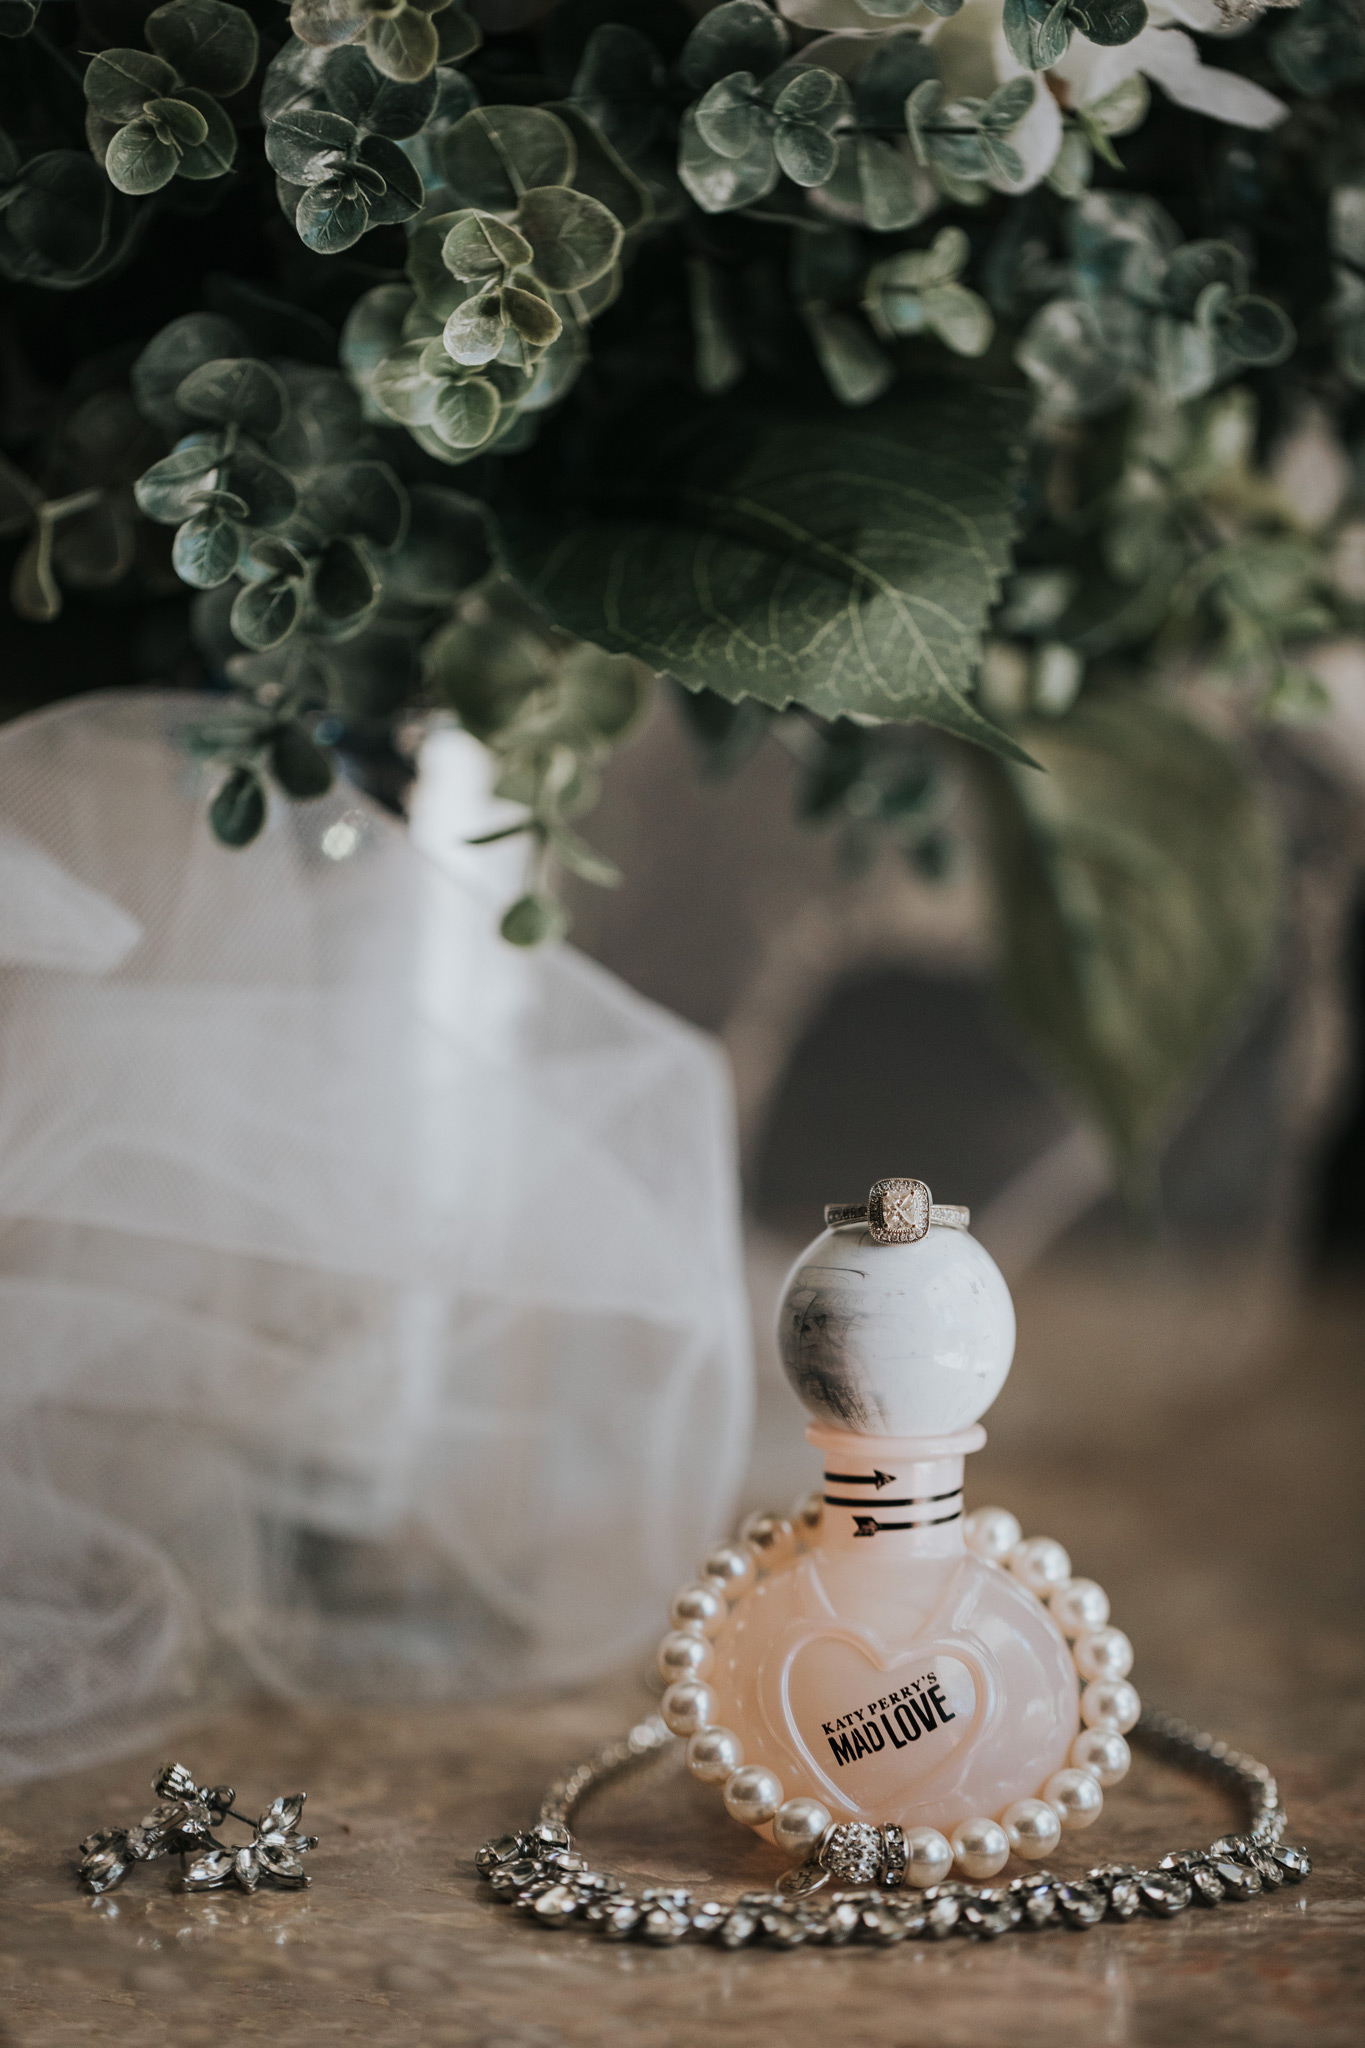 perfume bottle with brides jewelry wedding detail photo